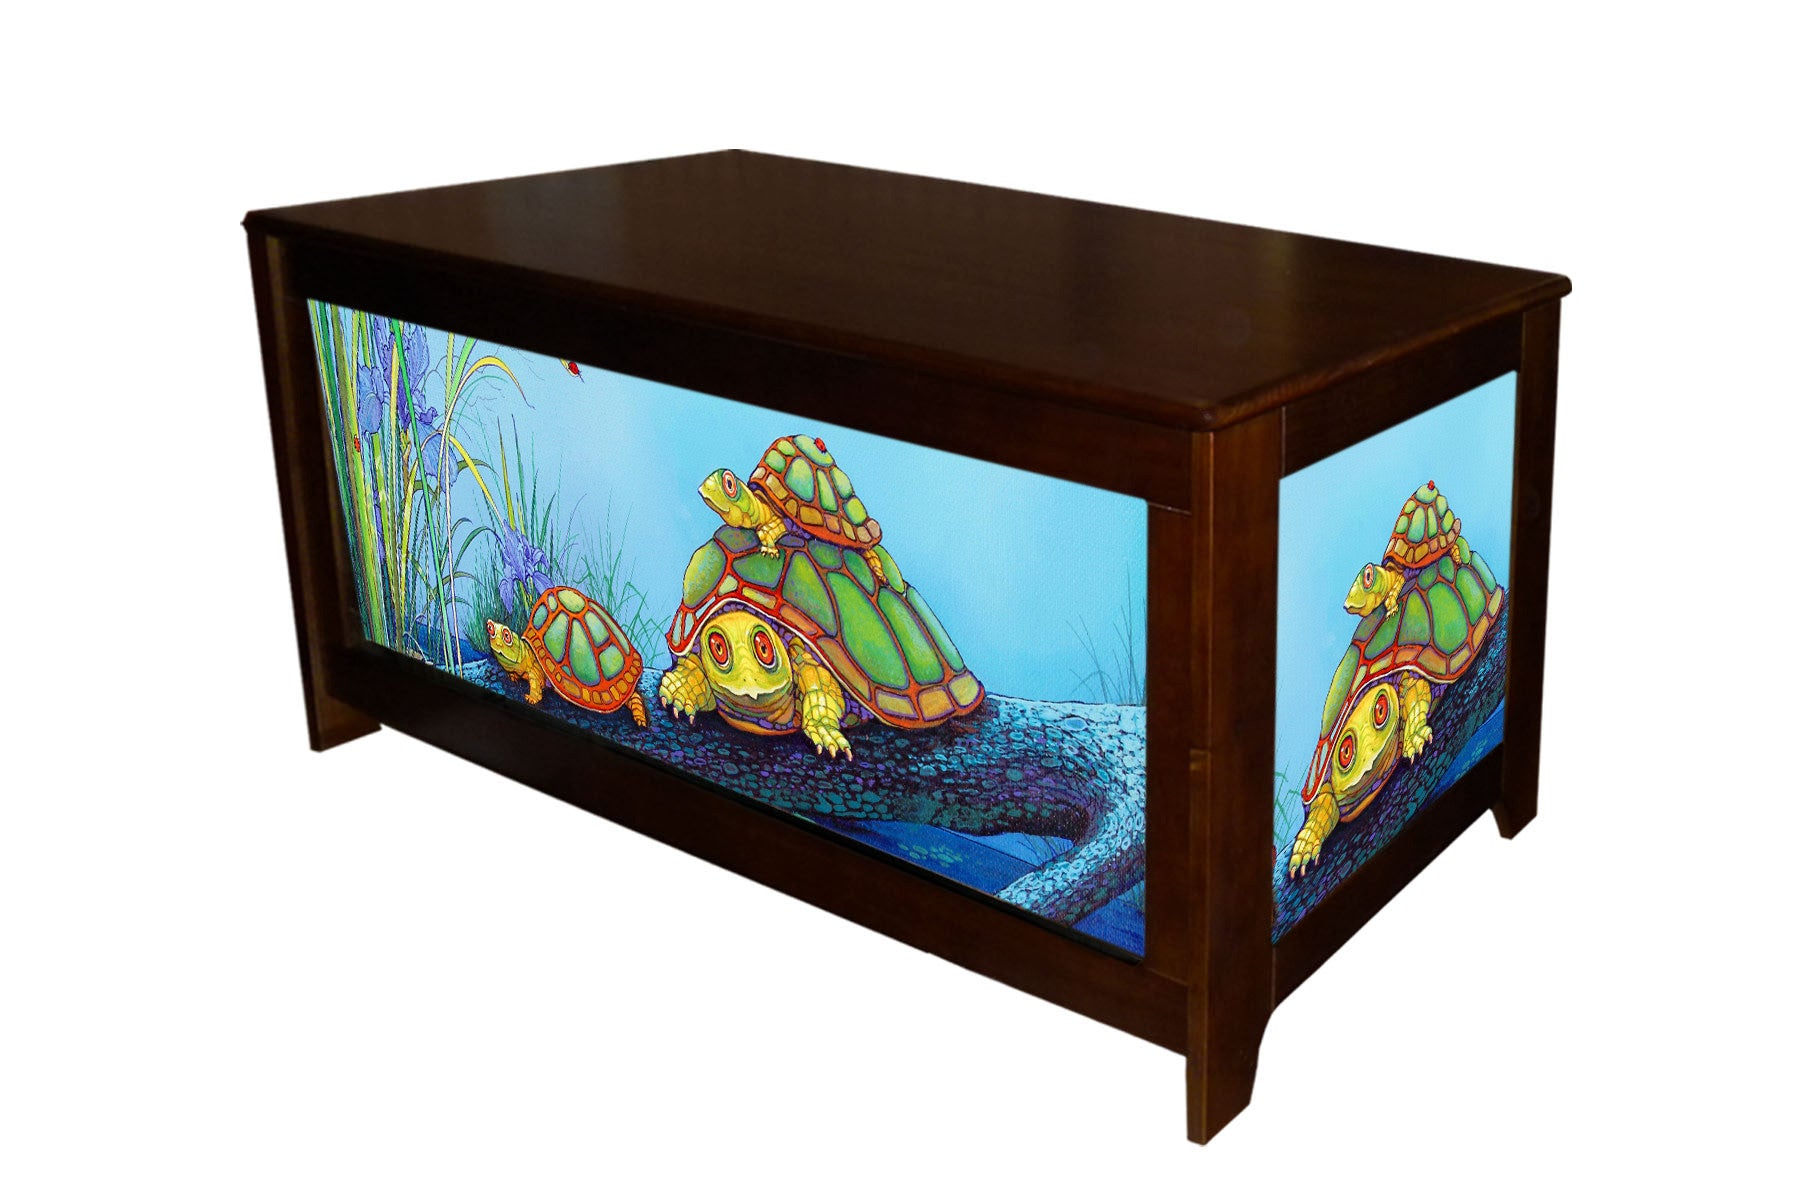 Turtle Hope chest with Murtle the Turtle by Lary McKee